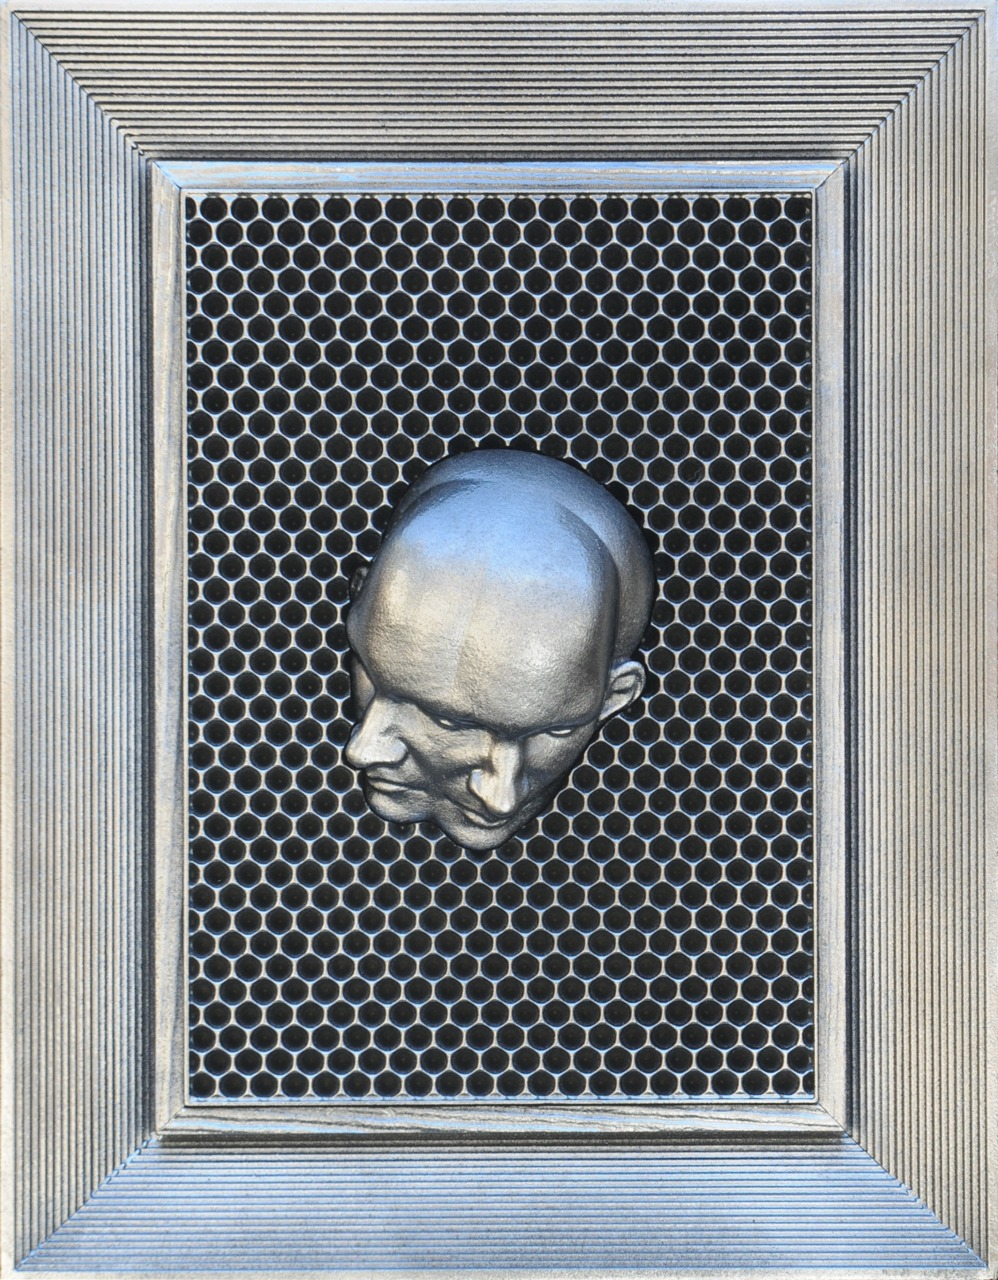 """Number 6. Series 7. by Elliott Earls for """"Undefined by Design"""" at Lorimoto 18"""" x 24"""" x 2"""" Chrome, HDU. 2014."""